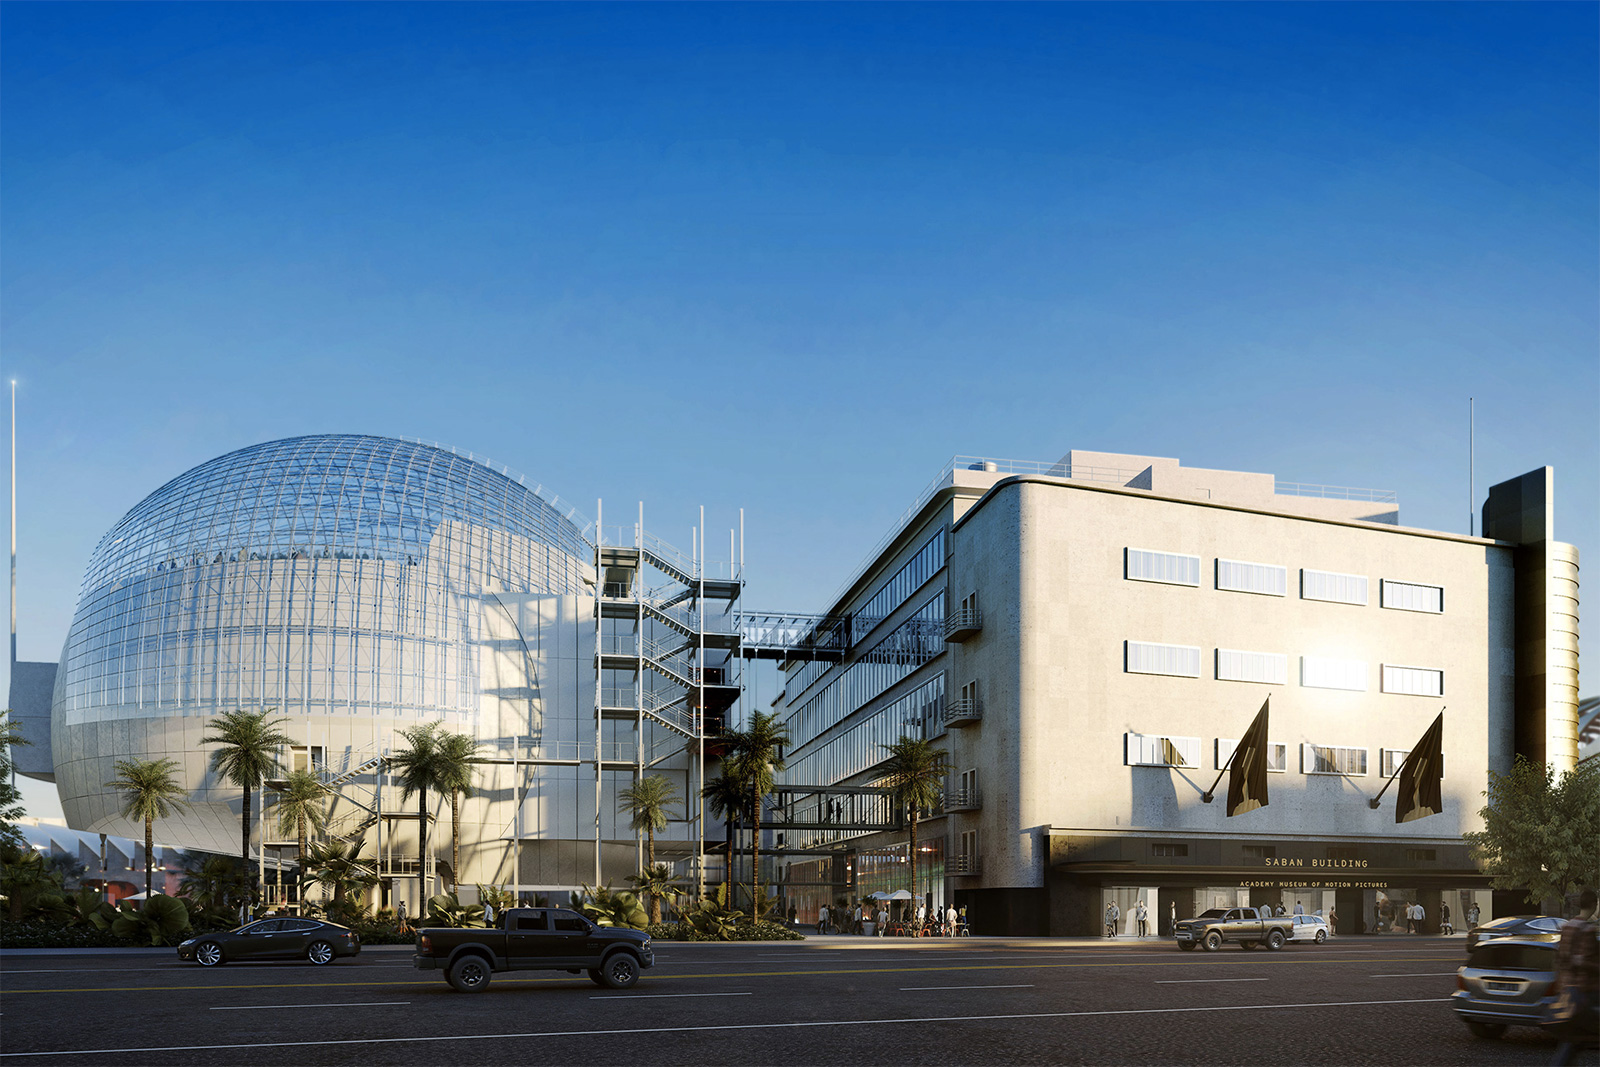 11 new museums opening in 2019: Academy Museum in Los Angeles